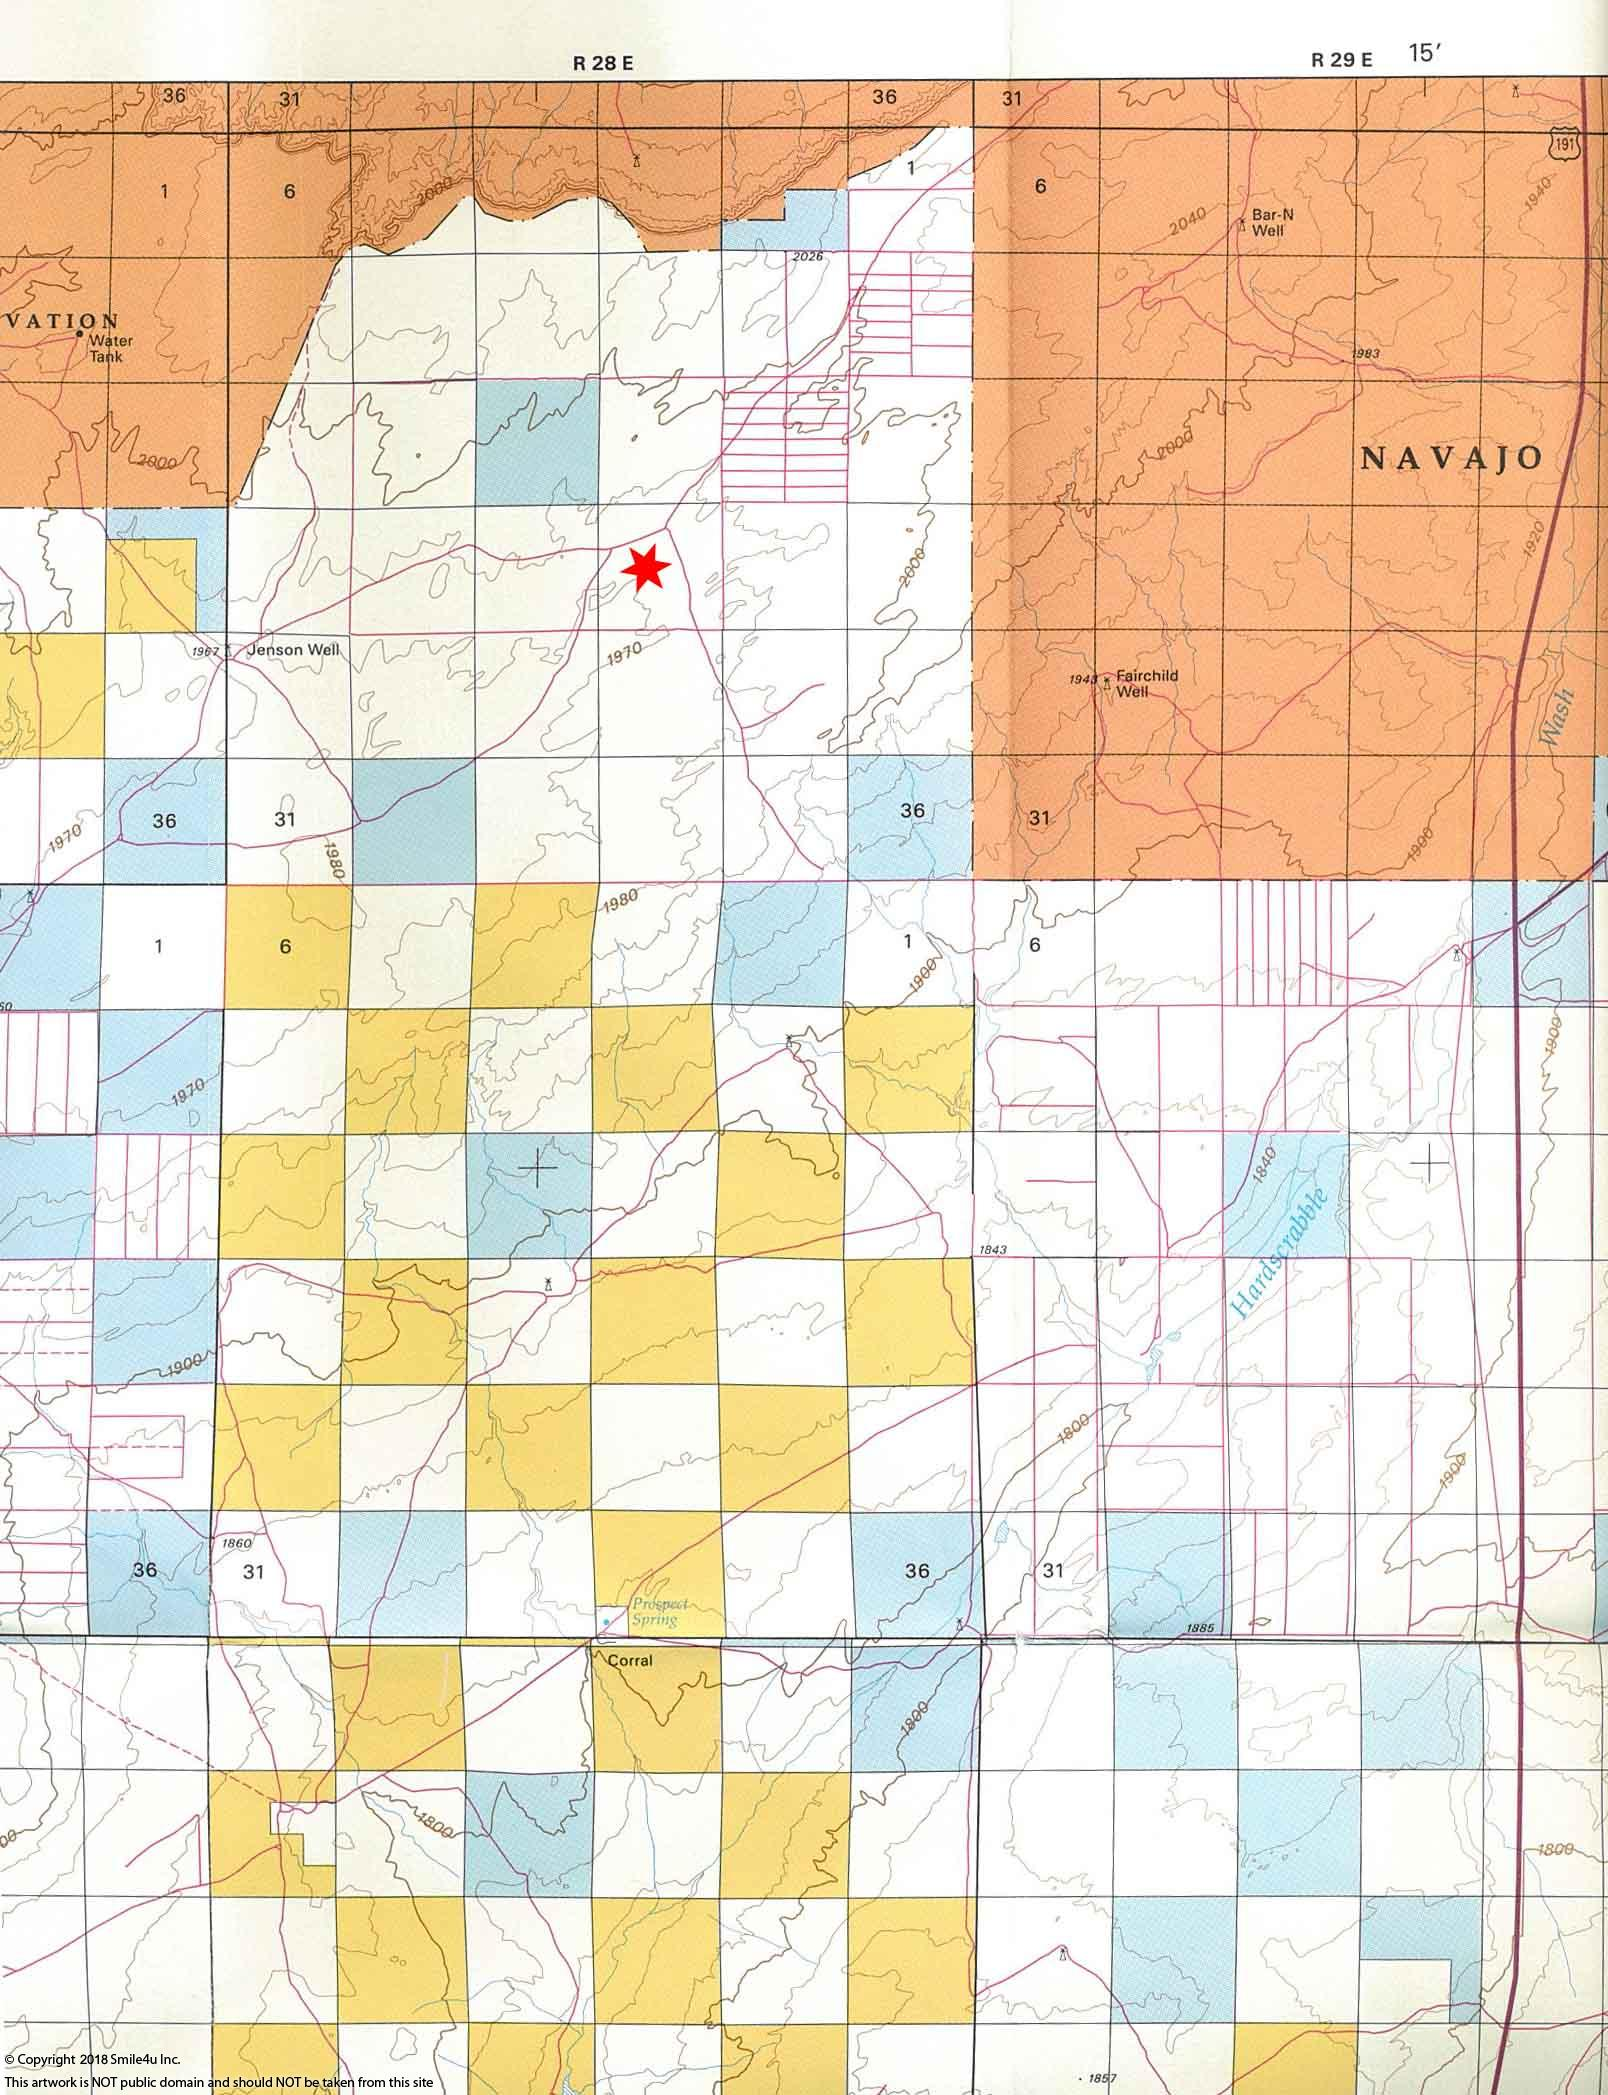 936831_watermarked_blm map.jpg